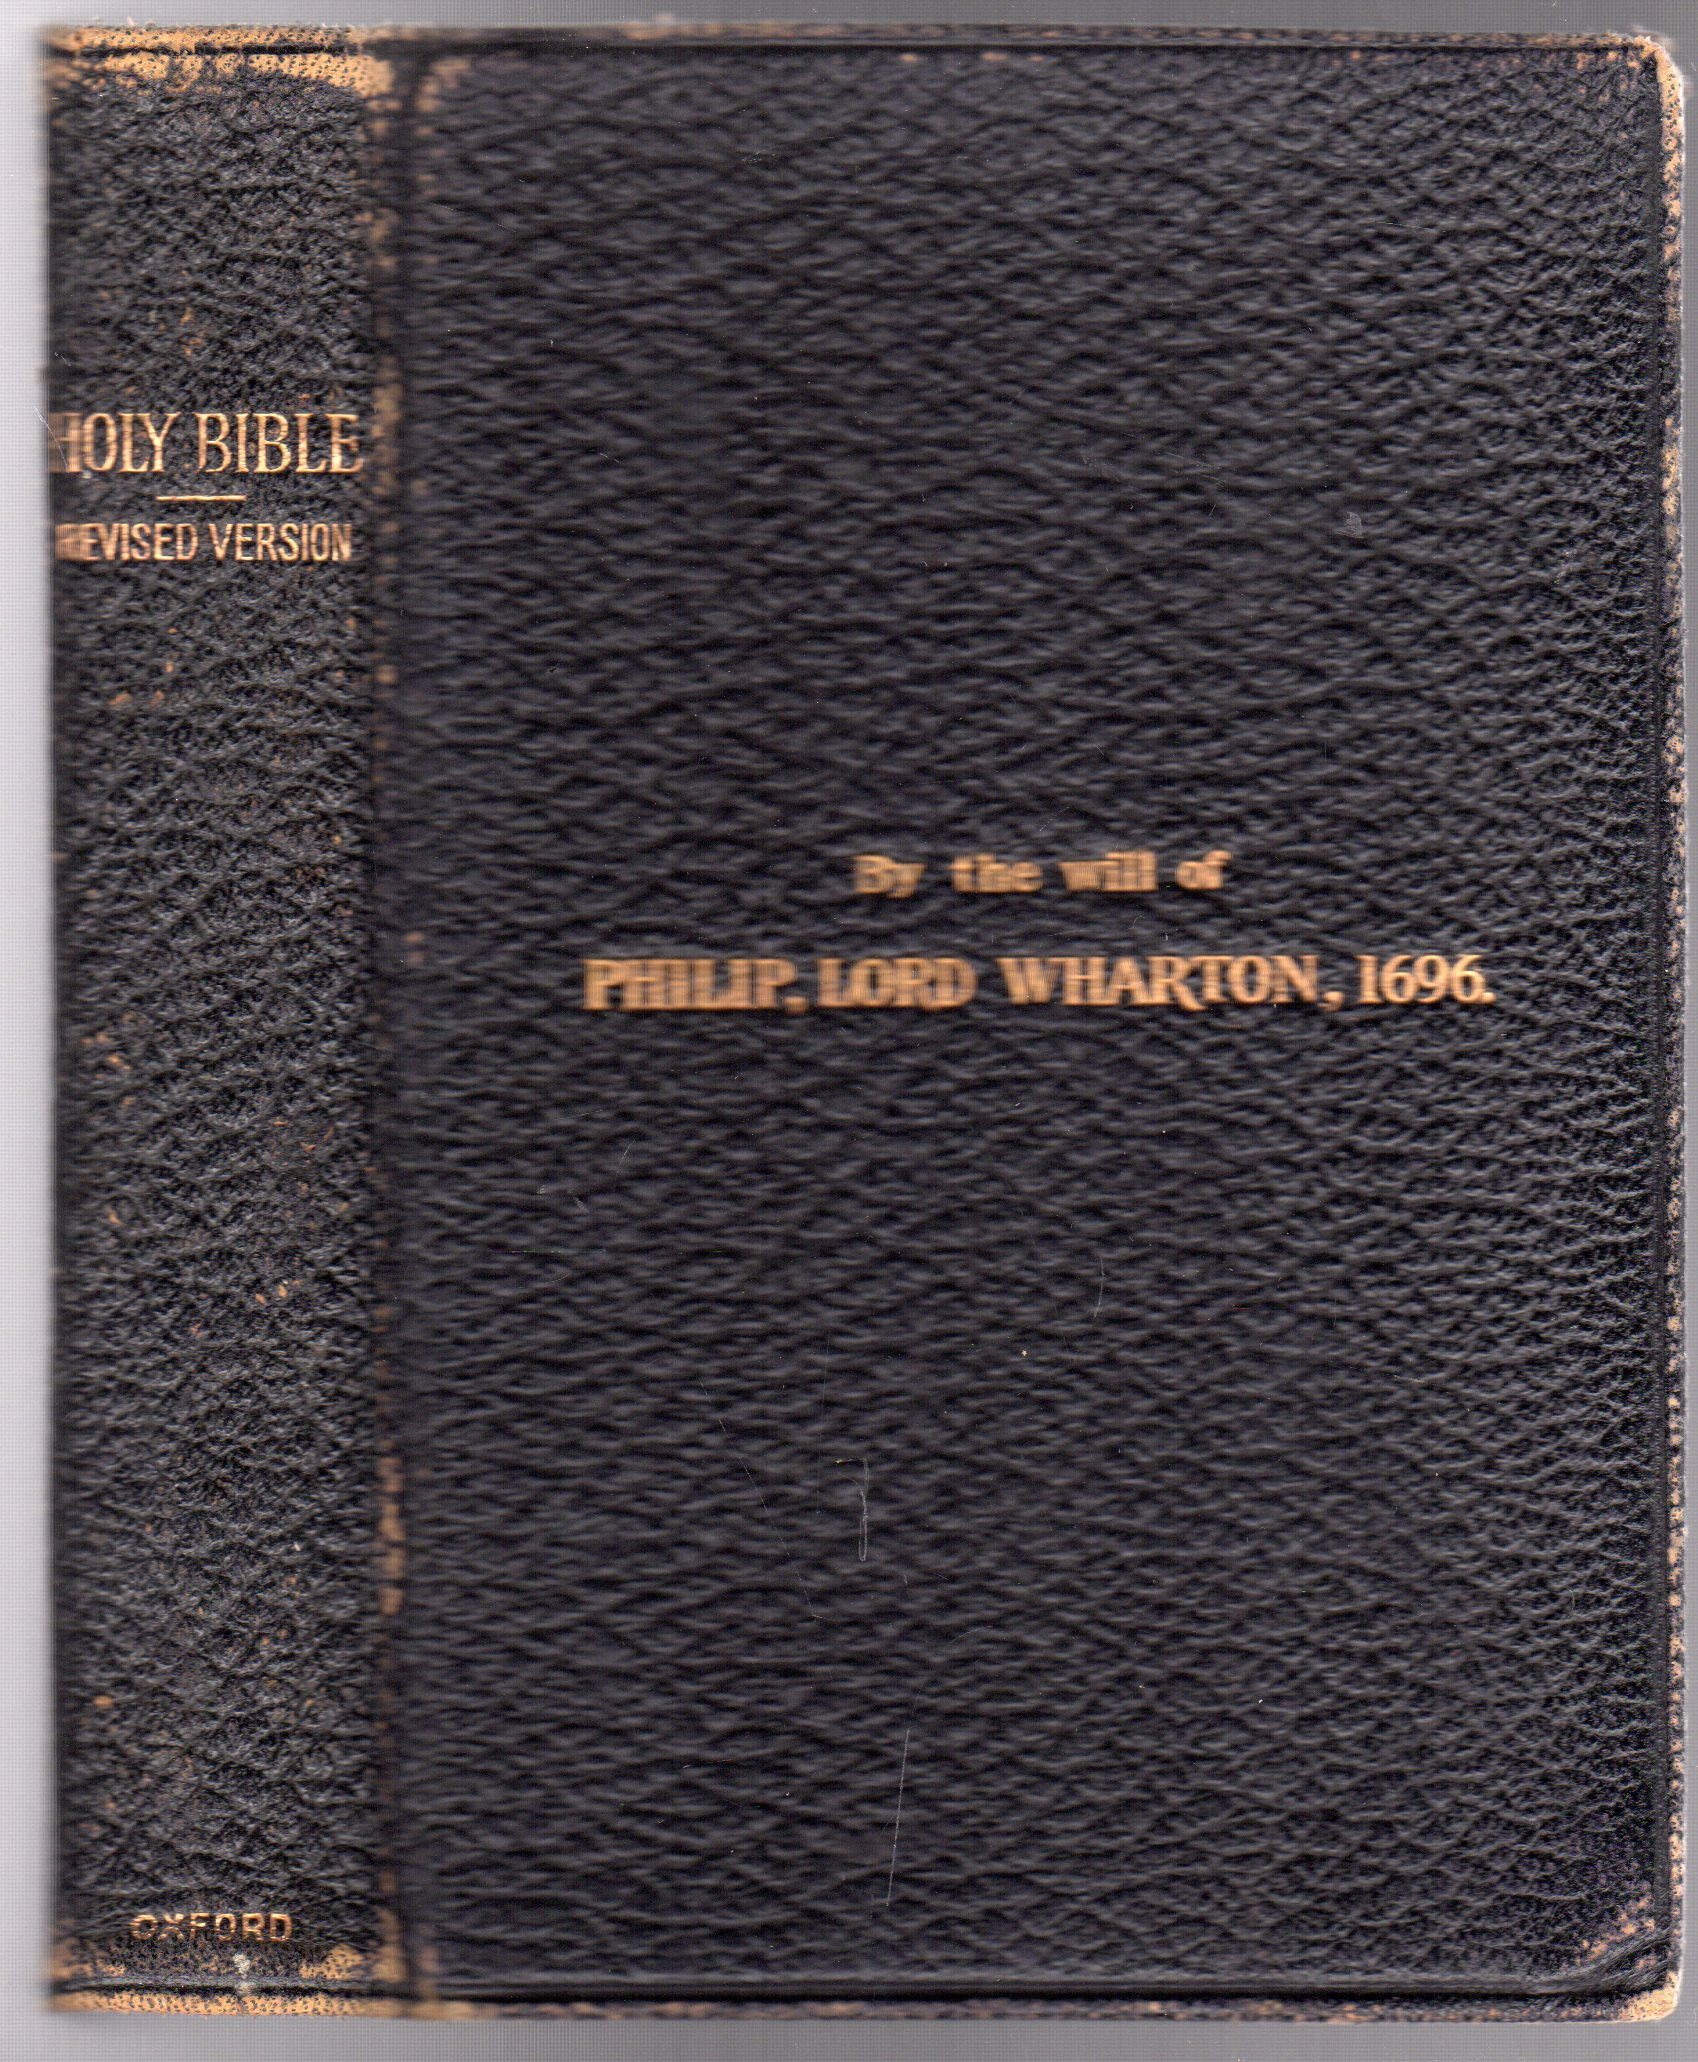 Image for The Holy Bible - Revised Version -  By the Will of Philip, Lord Wharton, 1696